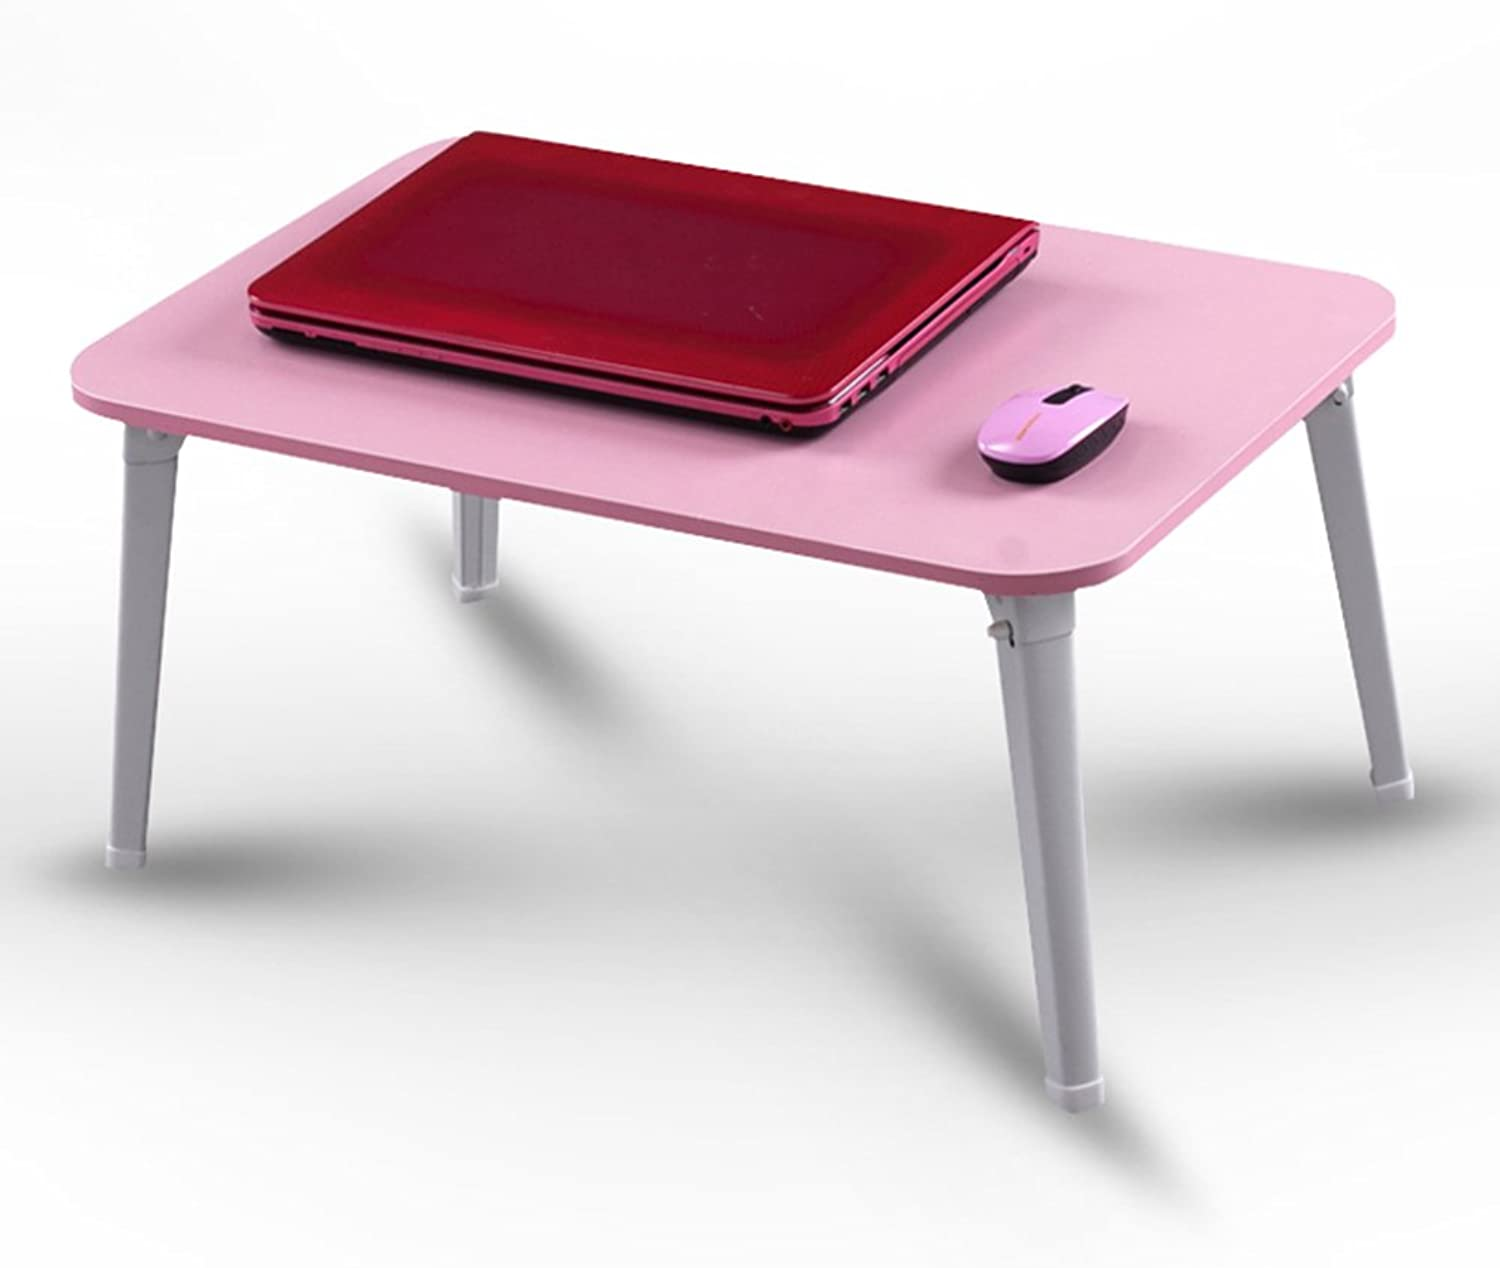 HAIPENG Small Folding Desk Computer Notebook Lazy Tables Foldable Bedside Table Wooden Dormitory (color   Pink, Size   60x40x29cm)